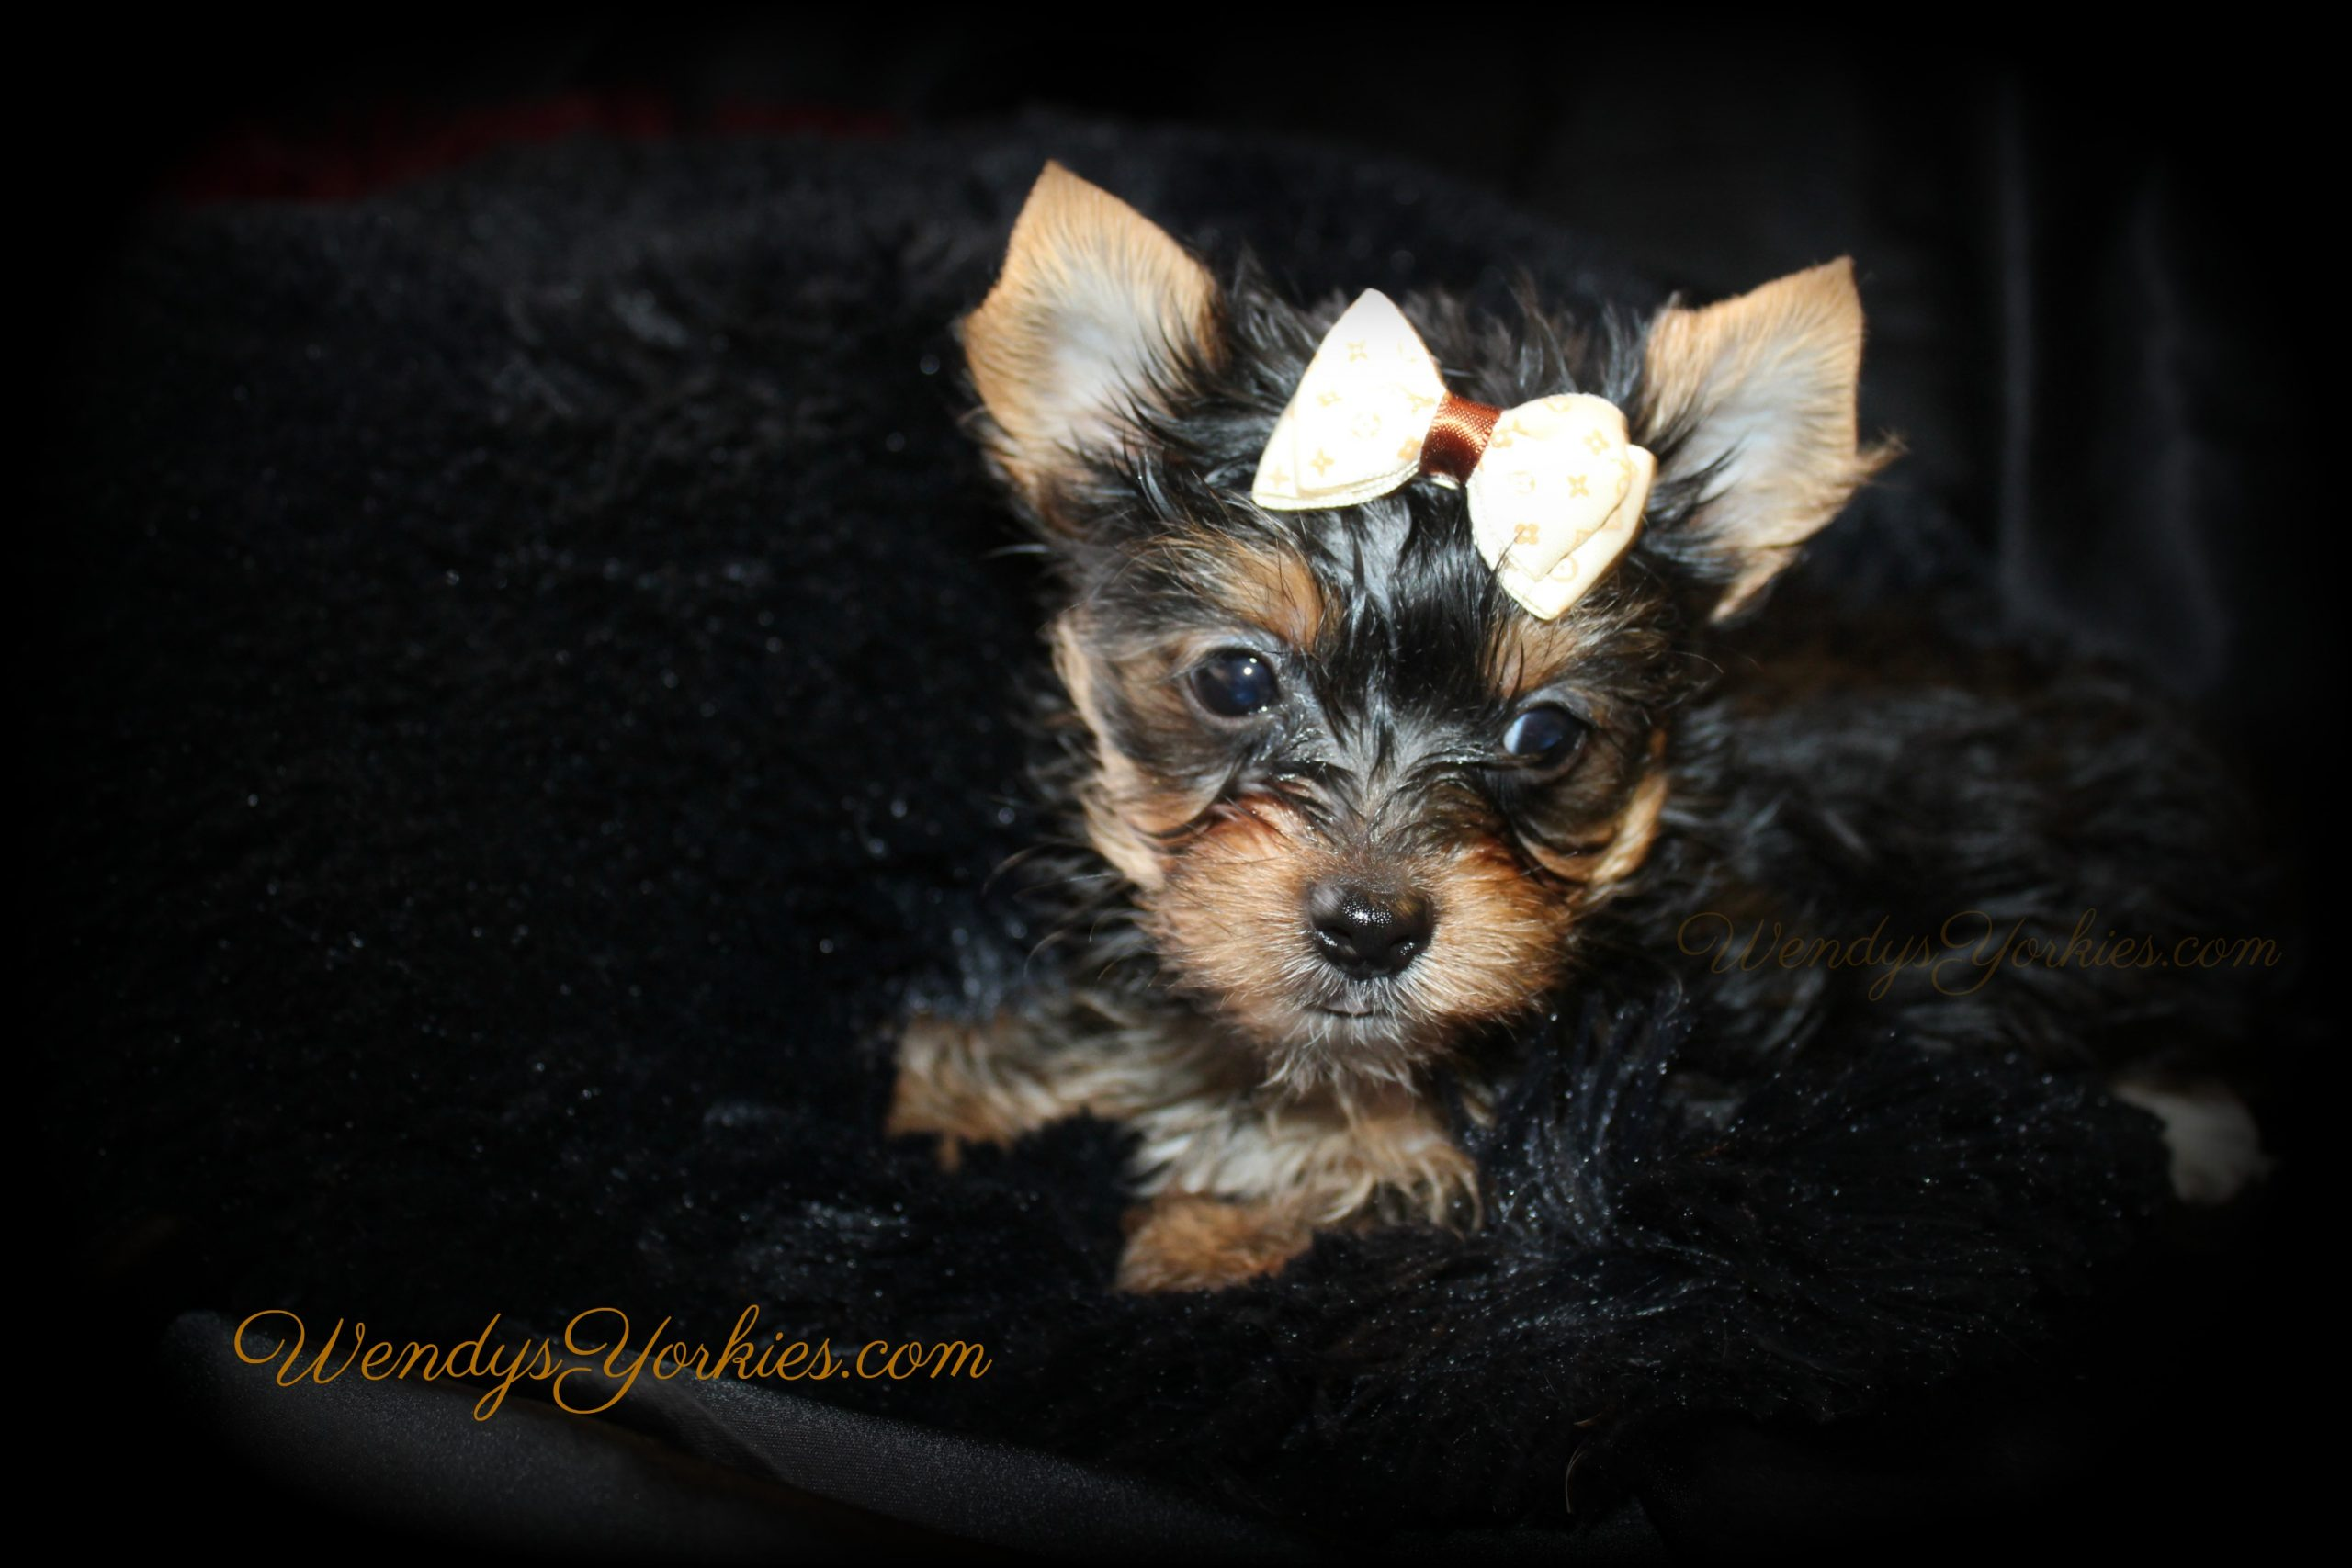 Teacup Yorkie puppy for sale in Texas, Anna m2, WendysYorkies.com